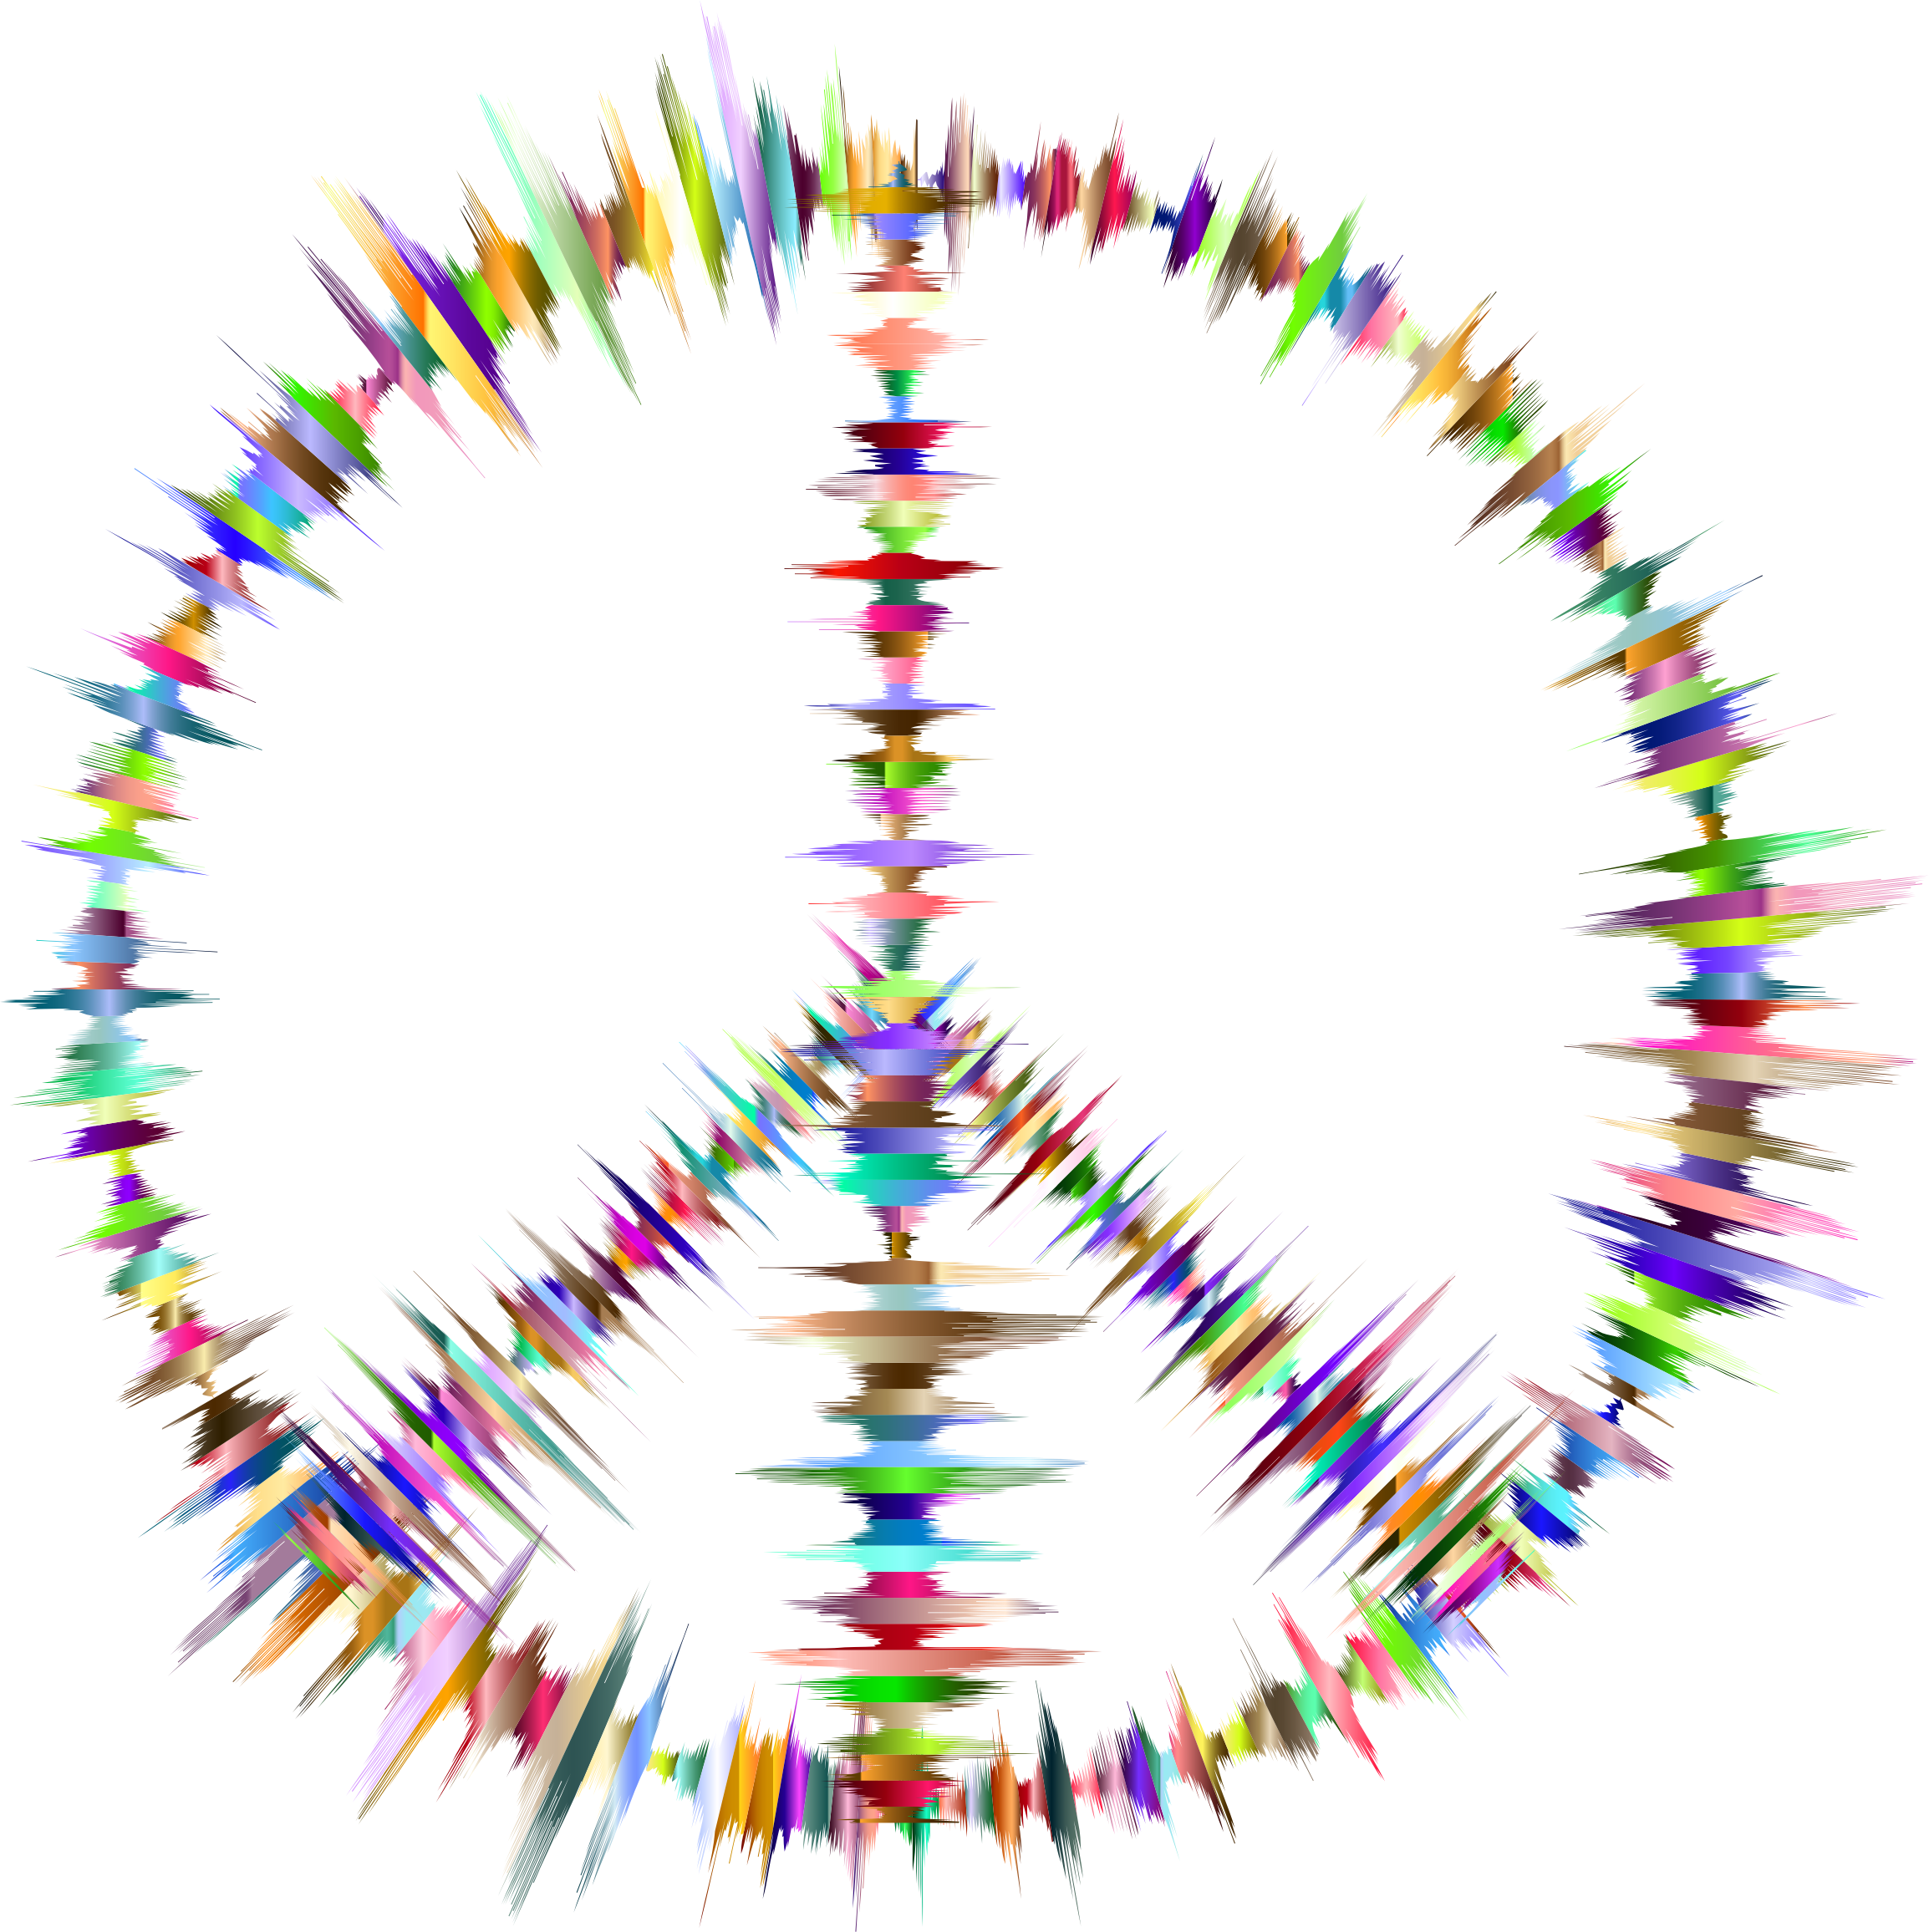 Prismatic Sound Waves Peace Sign by GDJ